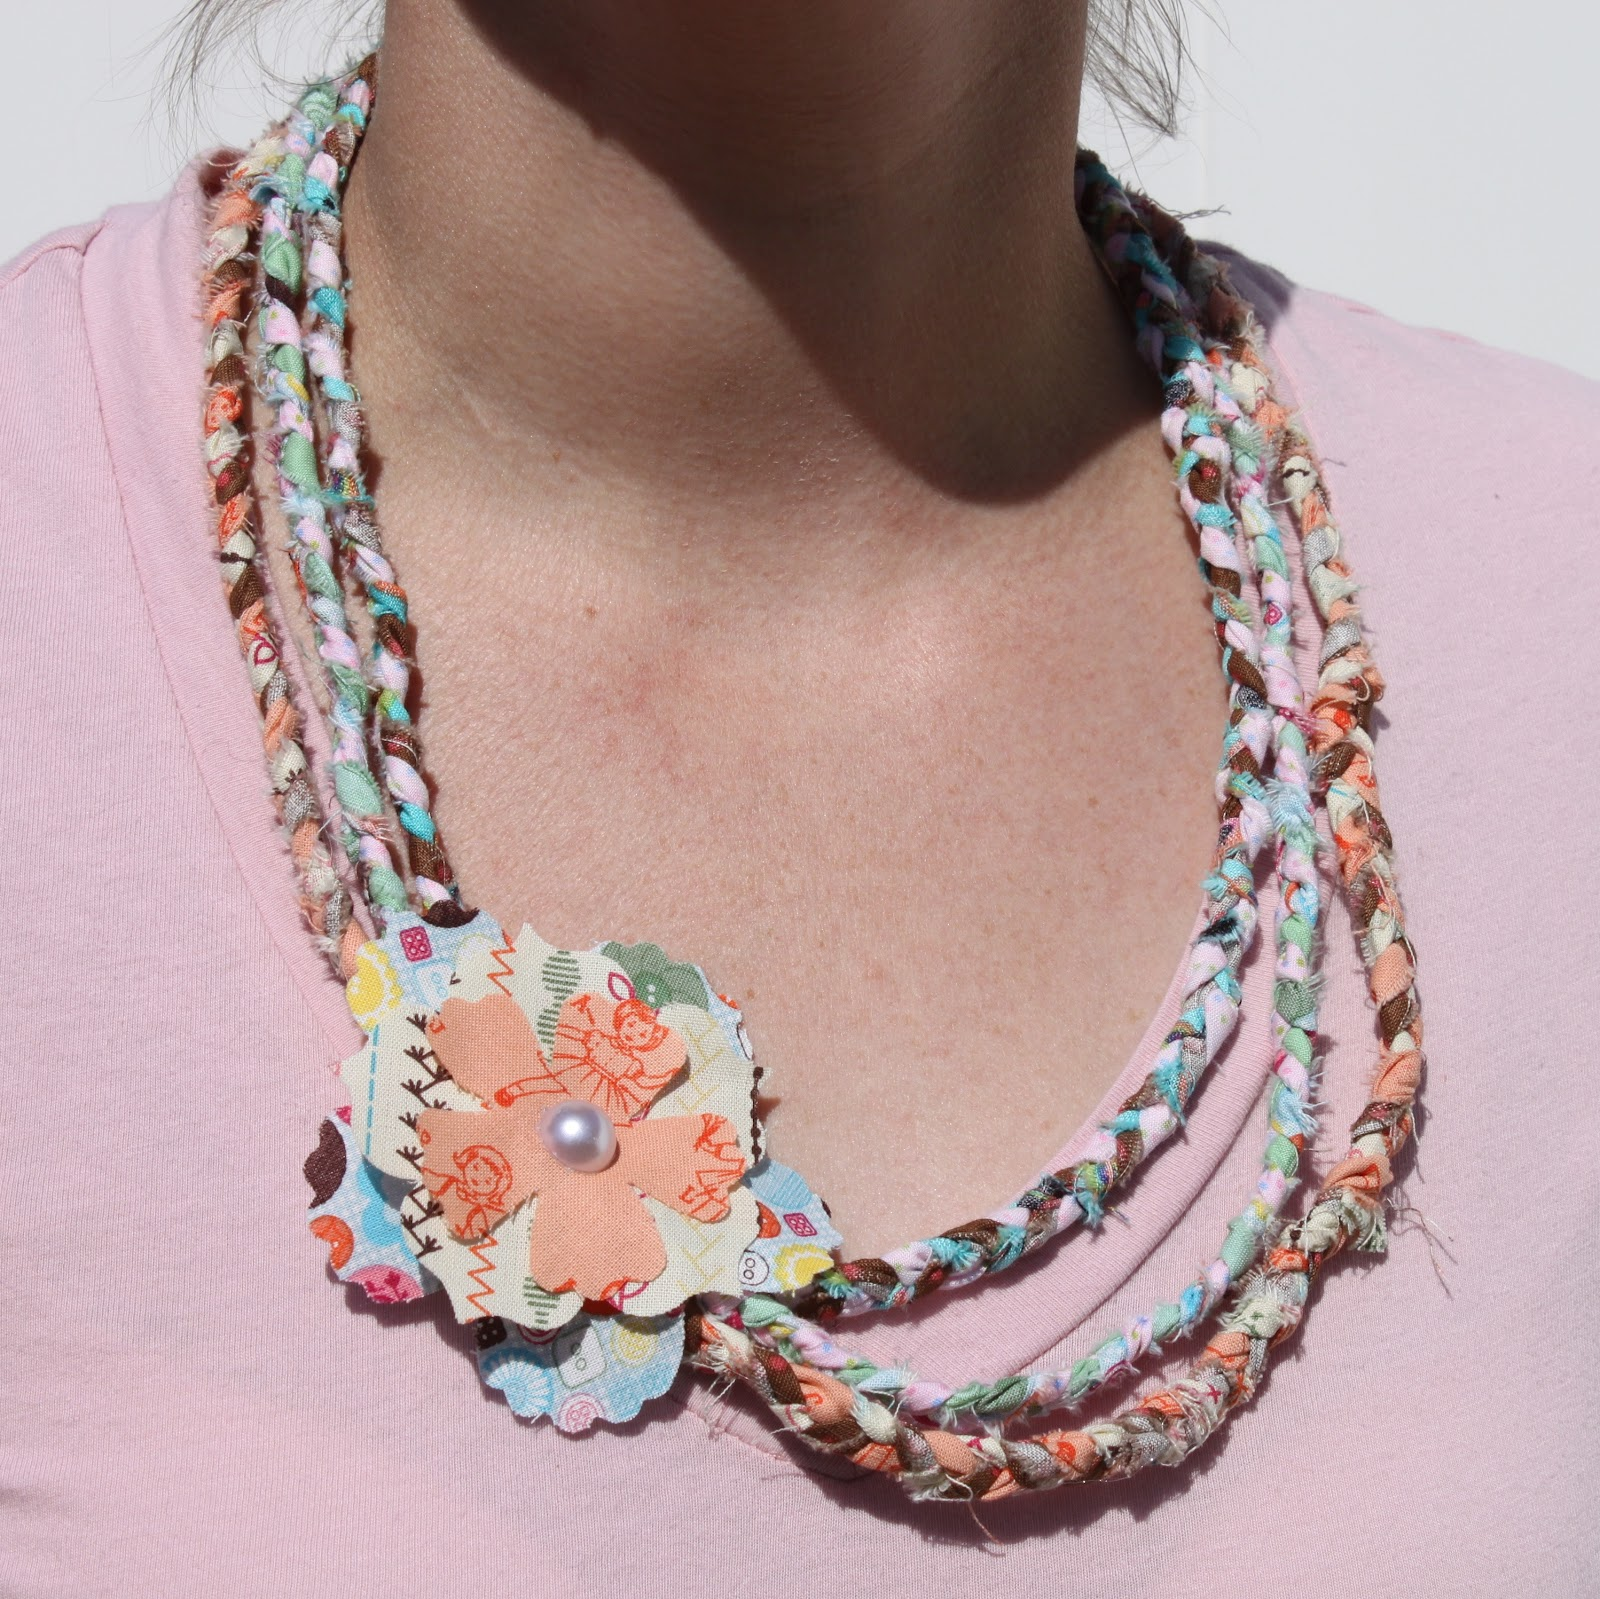 No-Sew Braided Fabric Necklace Tutorial - The Crafty Blog ...